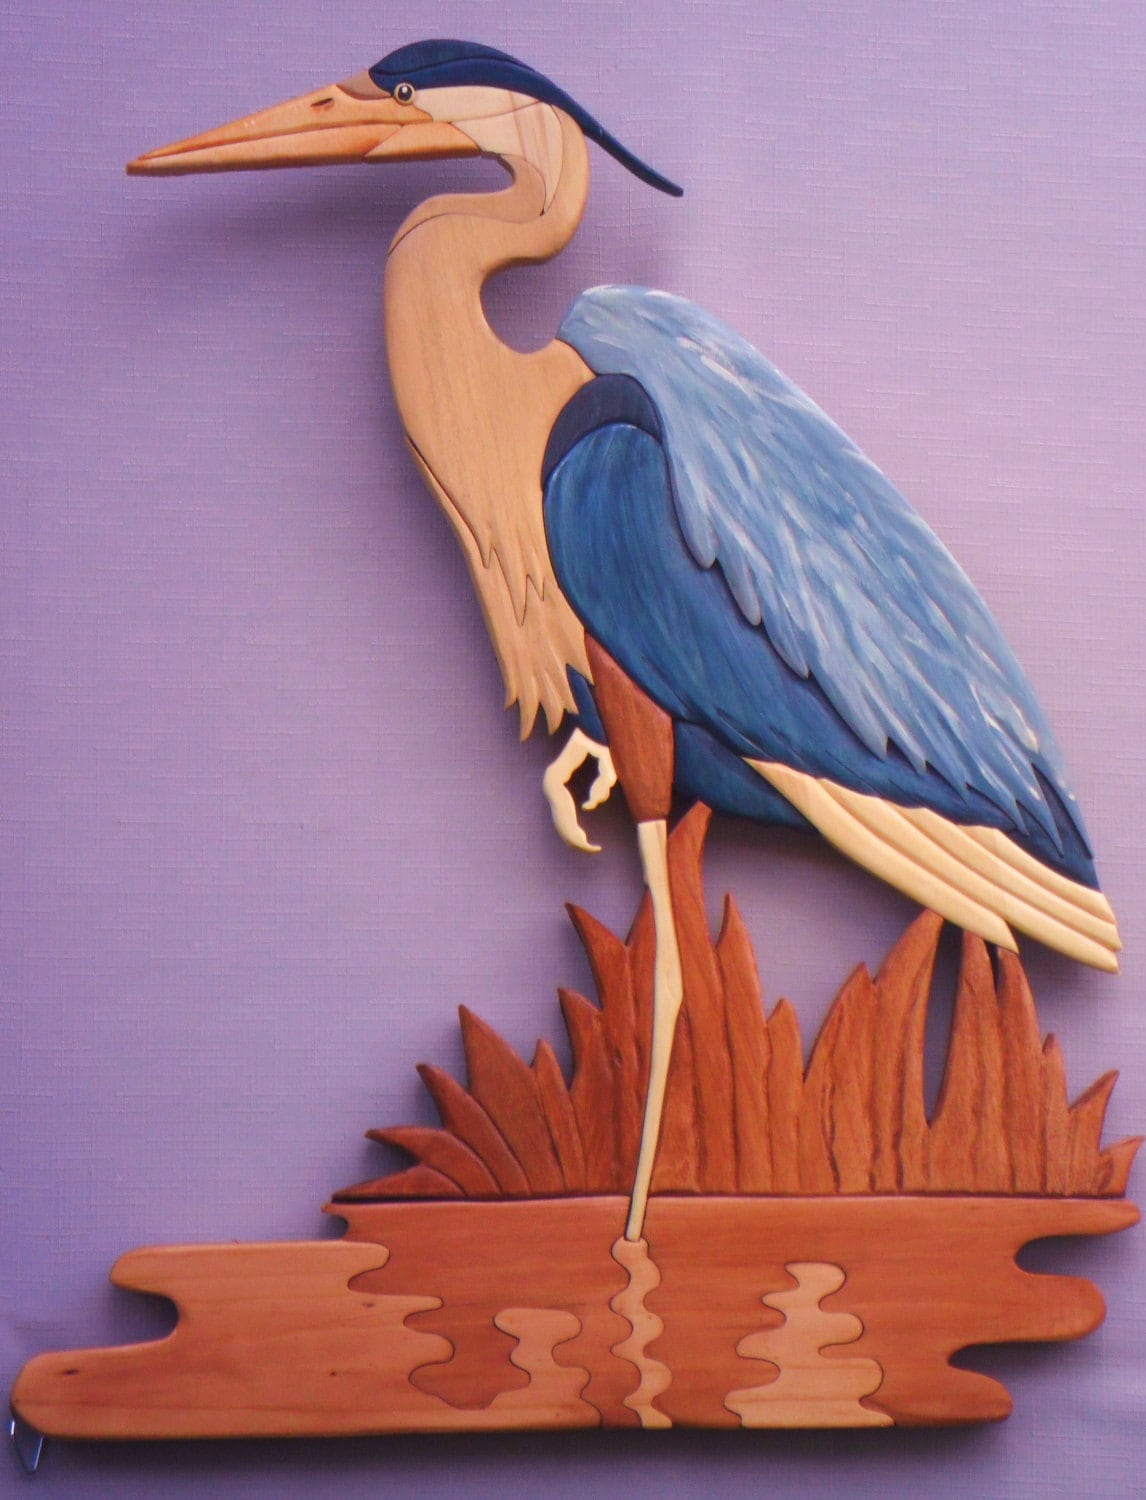 Blue Heron Waterbird Crane Wood Art Intarsia By